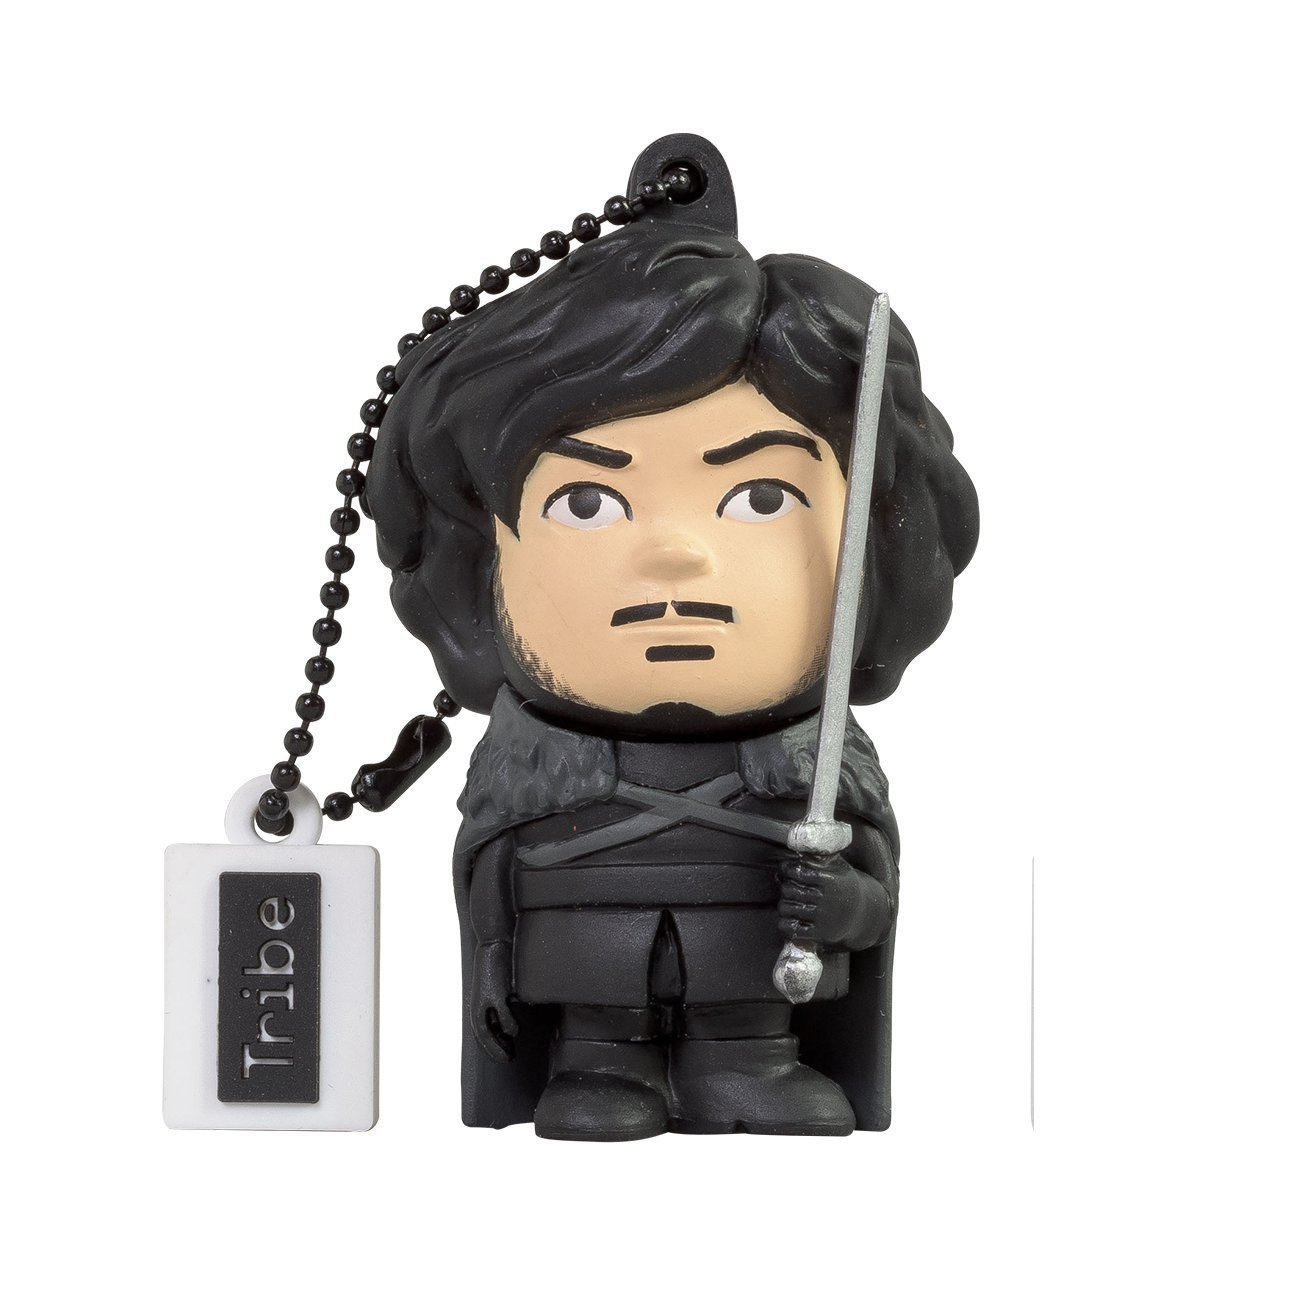 USB flash disk 16GB - Tribe, Game of Thrones Jon Snow